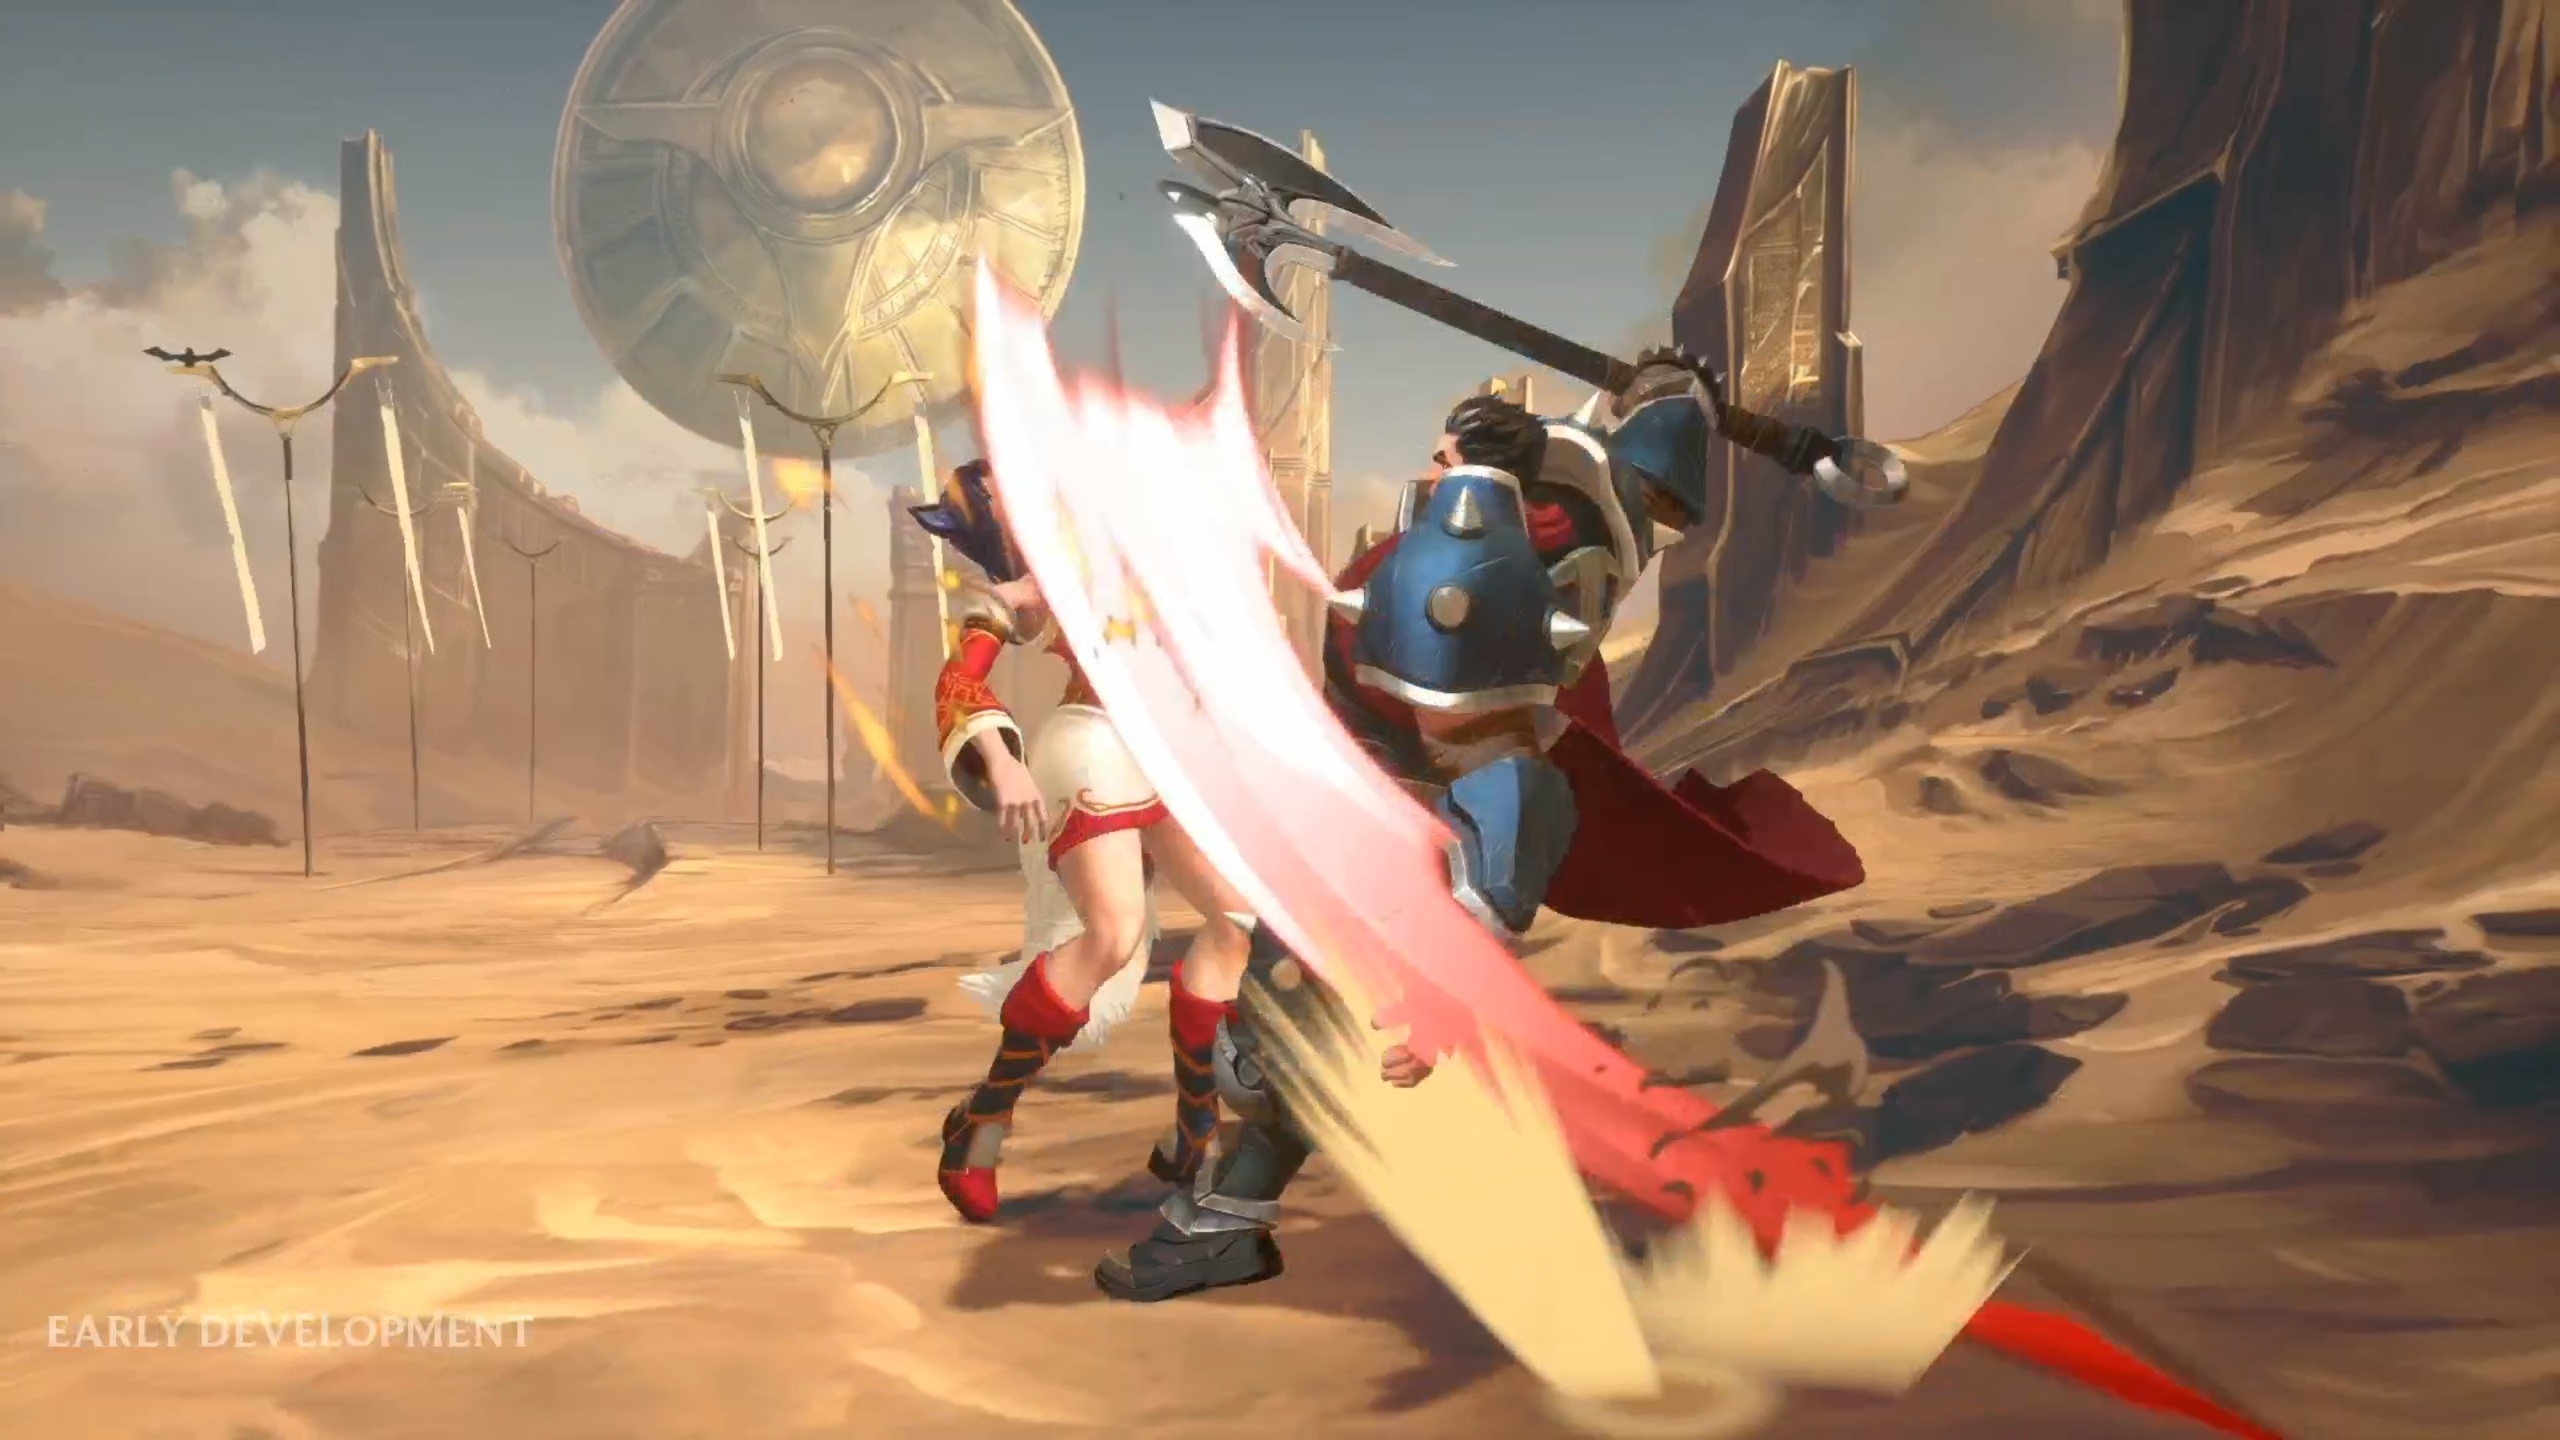 League of Legends' fighting game, Project L: Release date, footage, and everything we know so far | PC Gamer